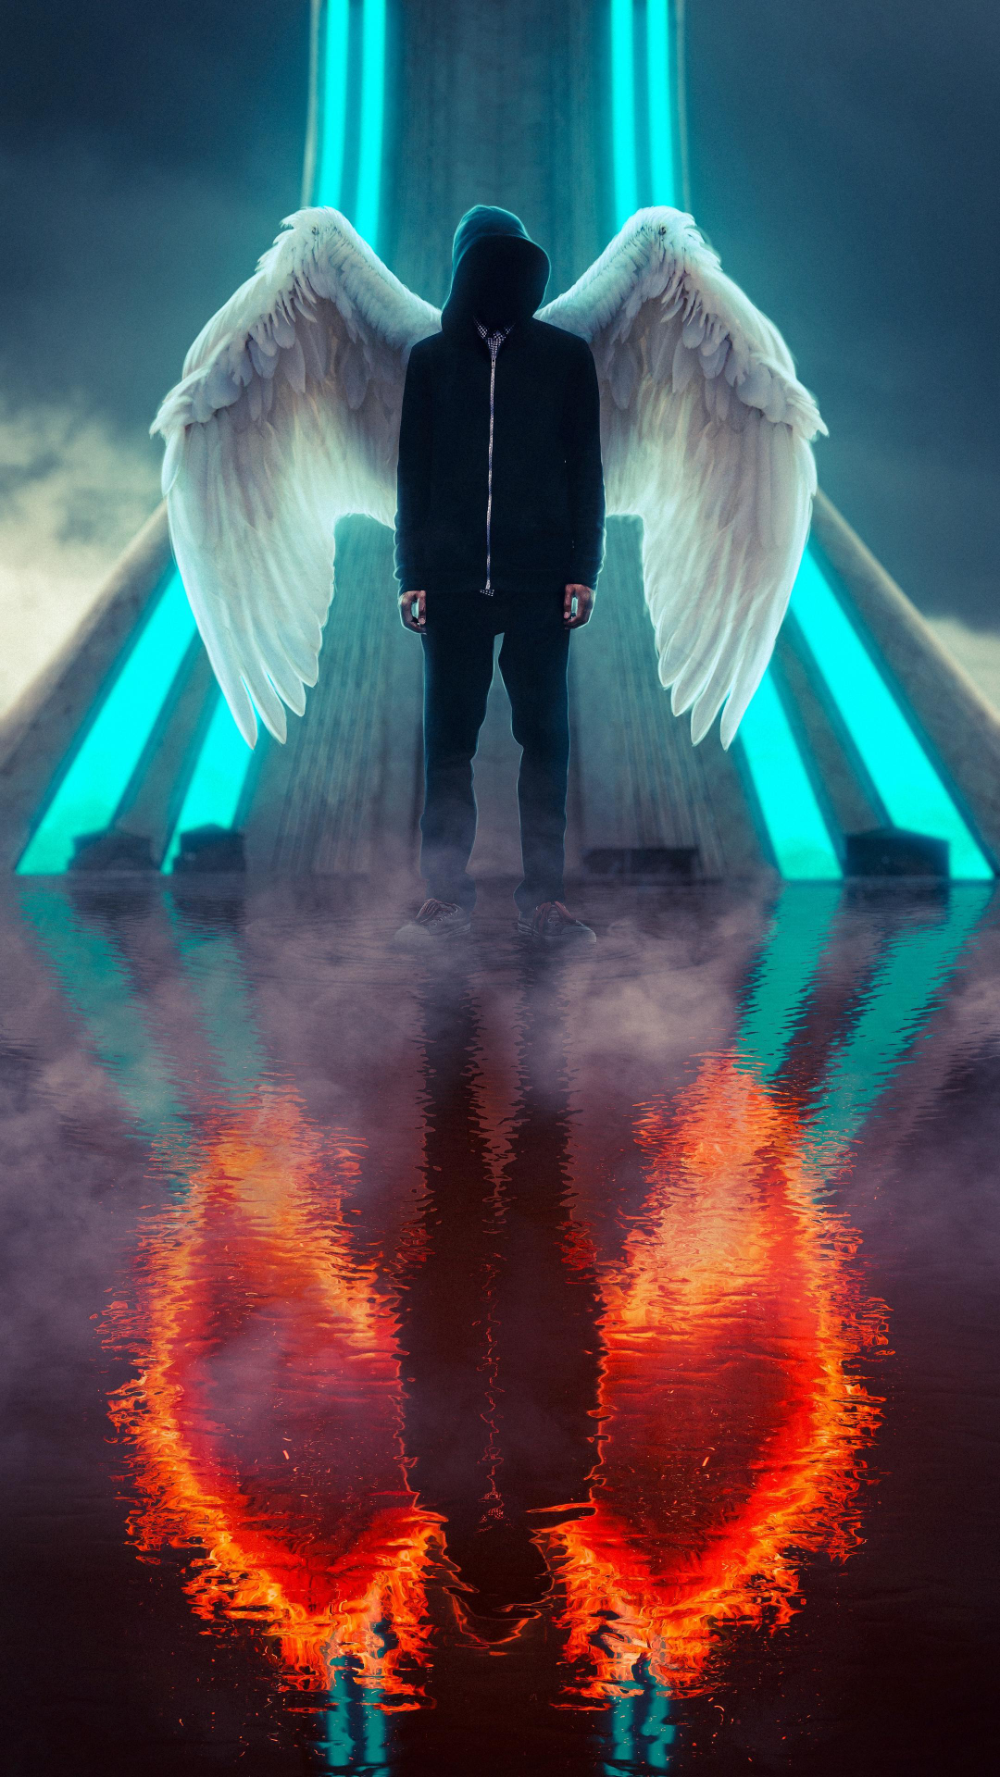 Wallpapers Hd For Android Samsung Wallpaper Iphone Wallpaper For Guys Angel Wallpaper Smoke Wallpaper